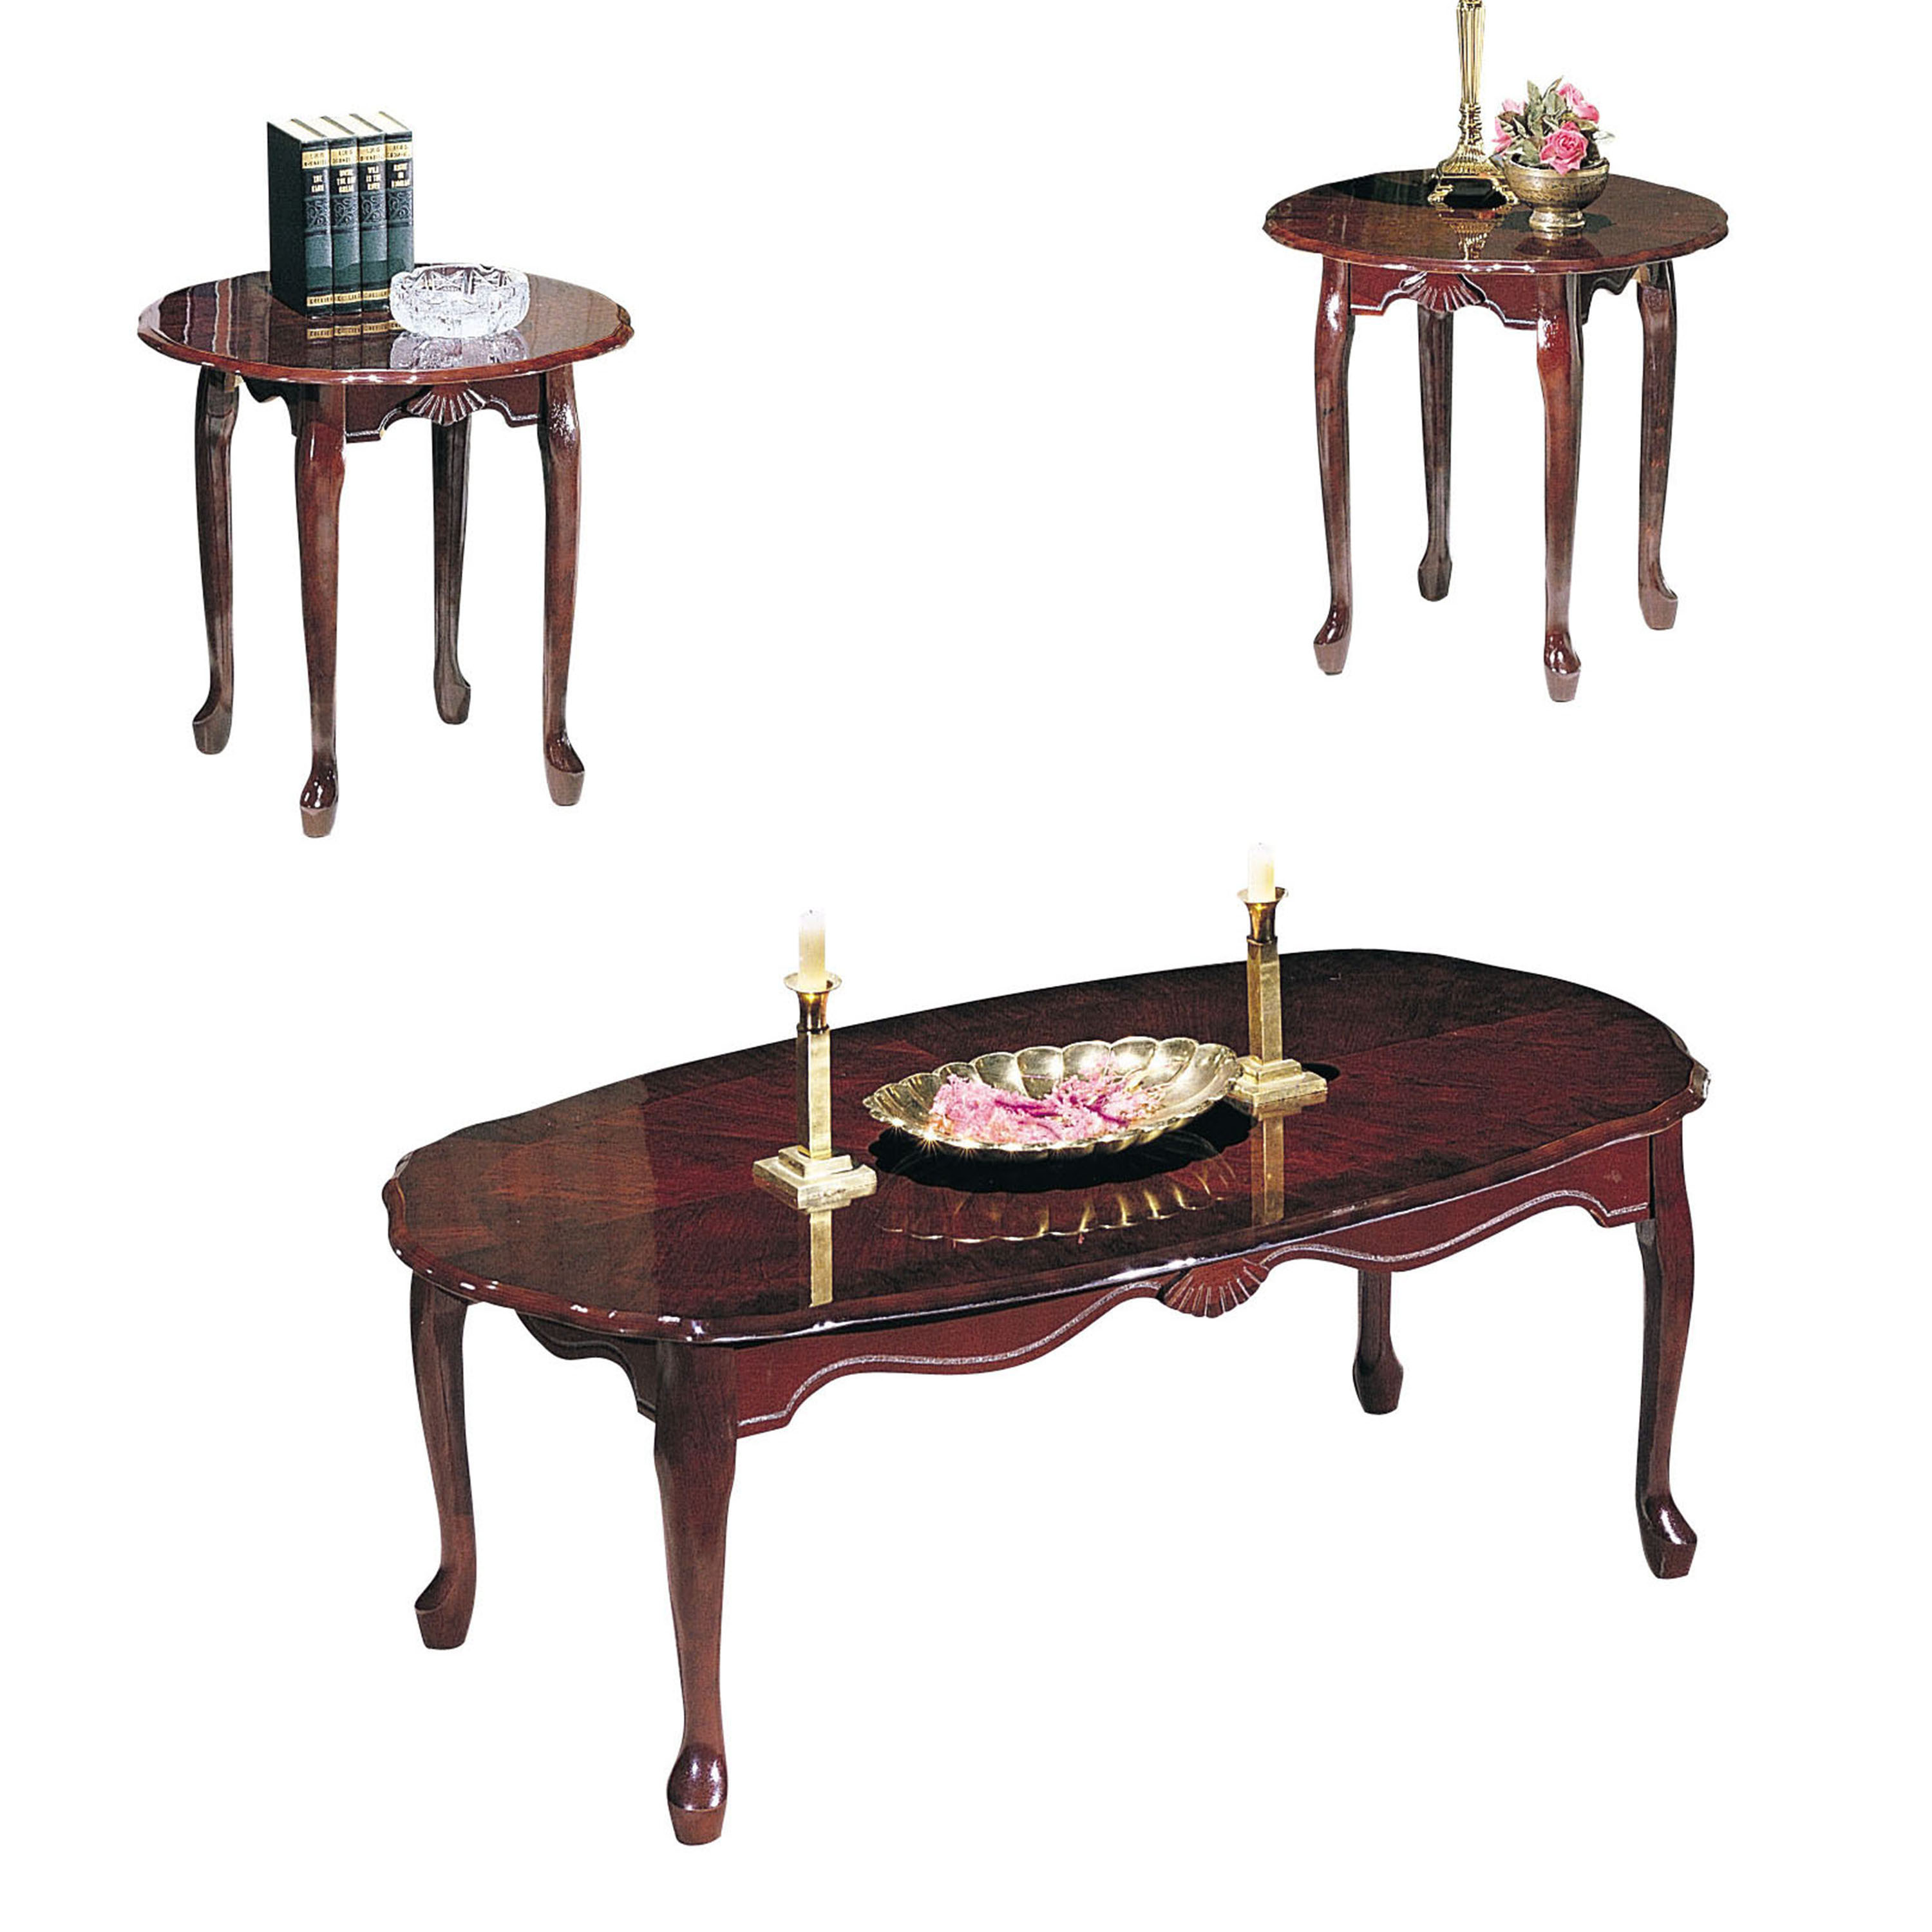 ACME Essex 3-Piece Pack Coffee/End Table Set, Cherry - Walmart.com